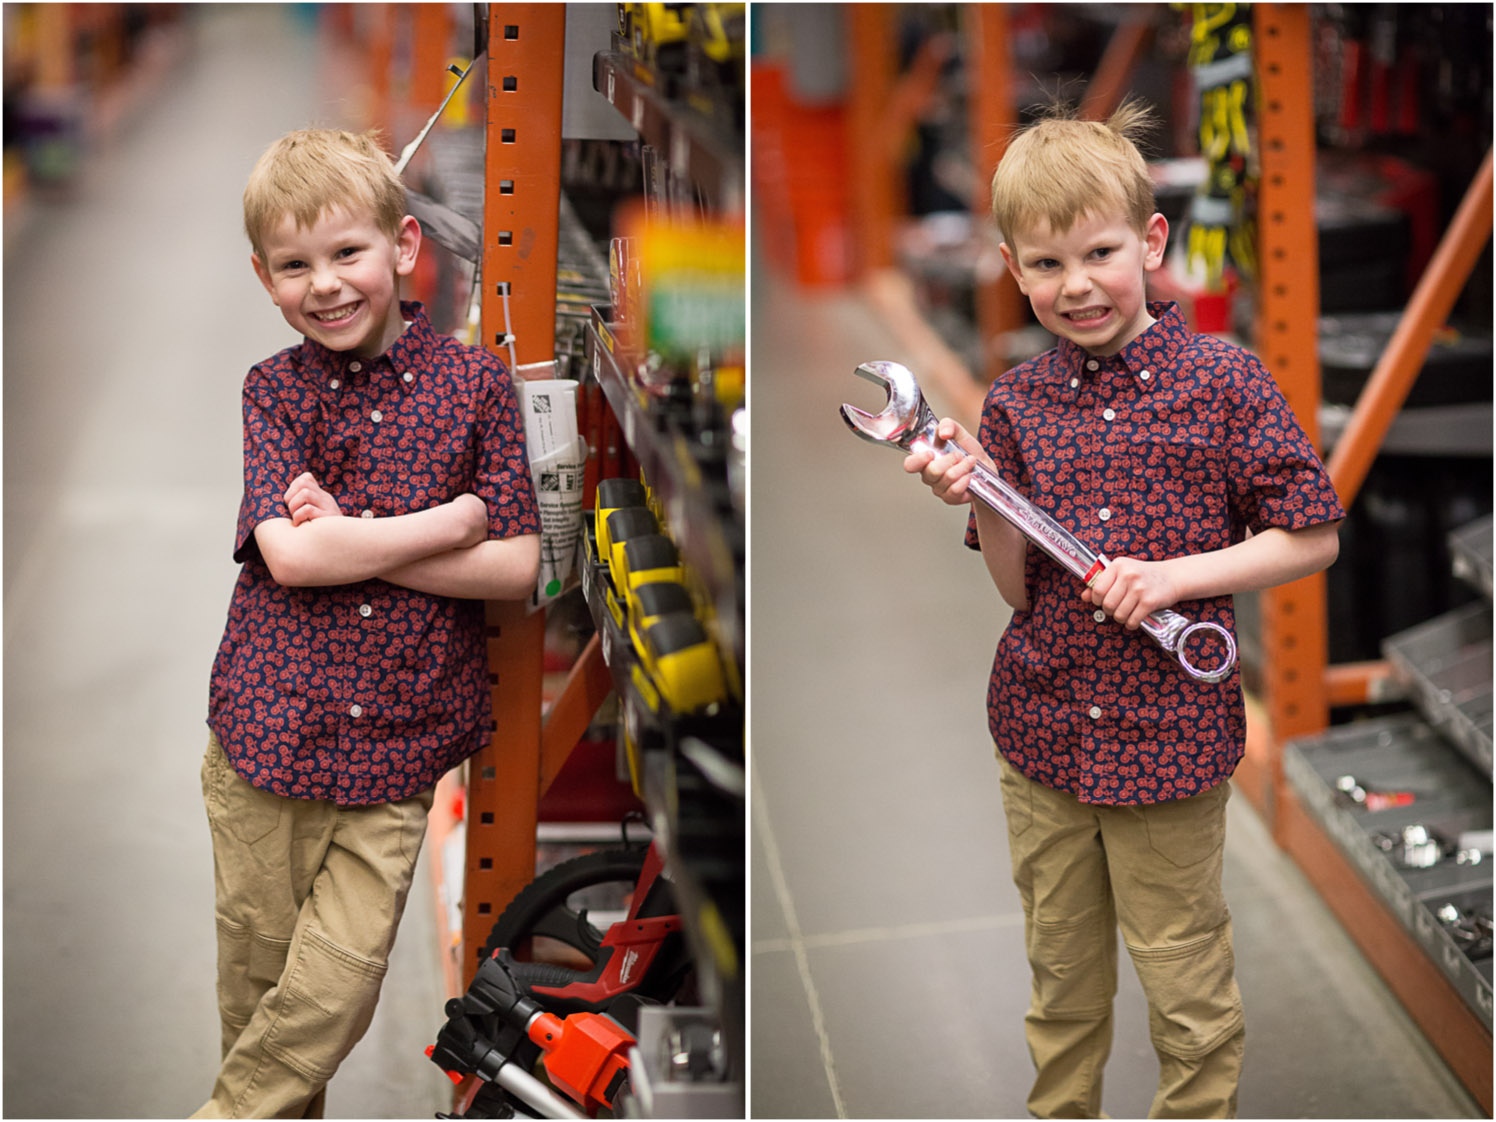 We had to take a few that showed a sense of place, since The Home Depot does reflect H's personality a lot!